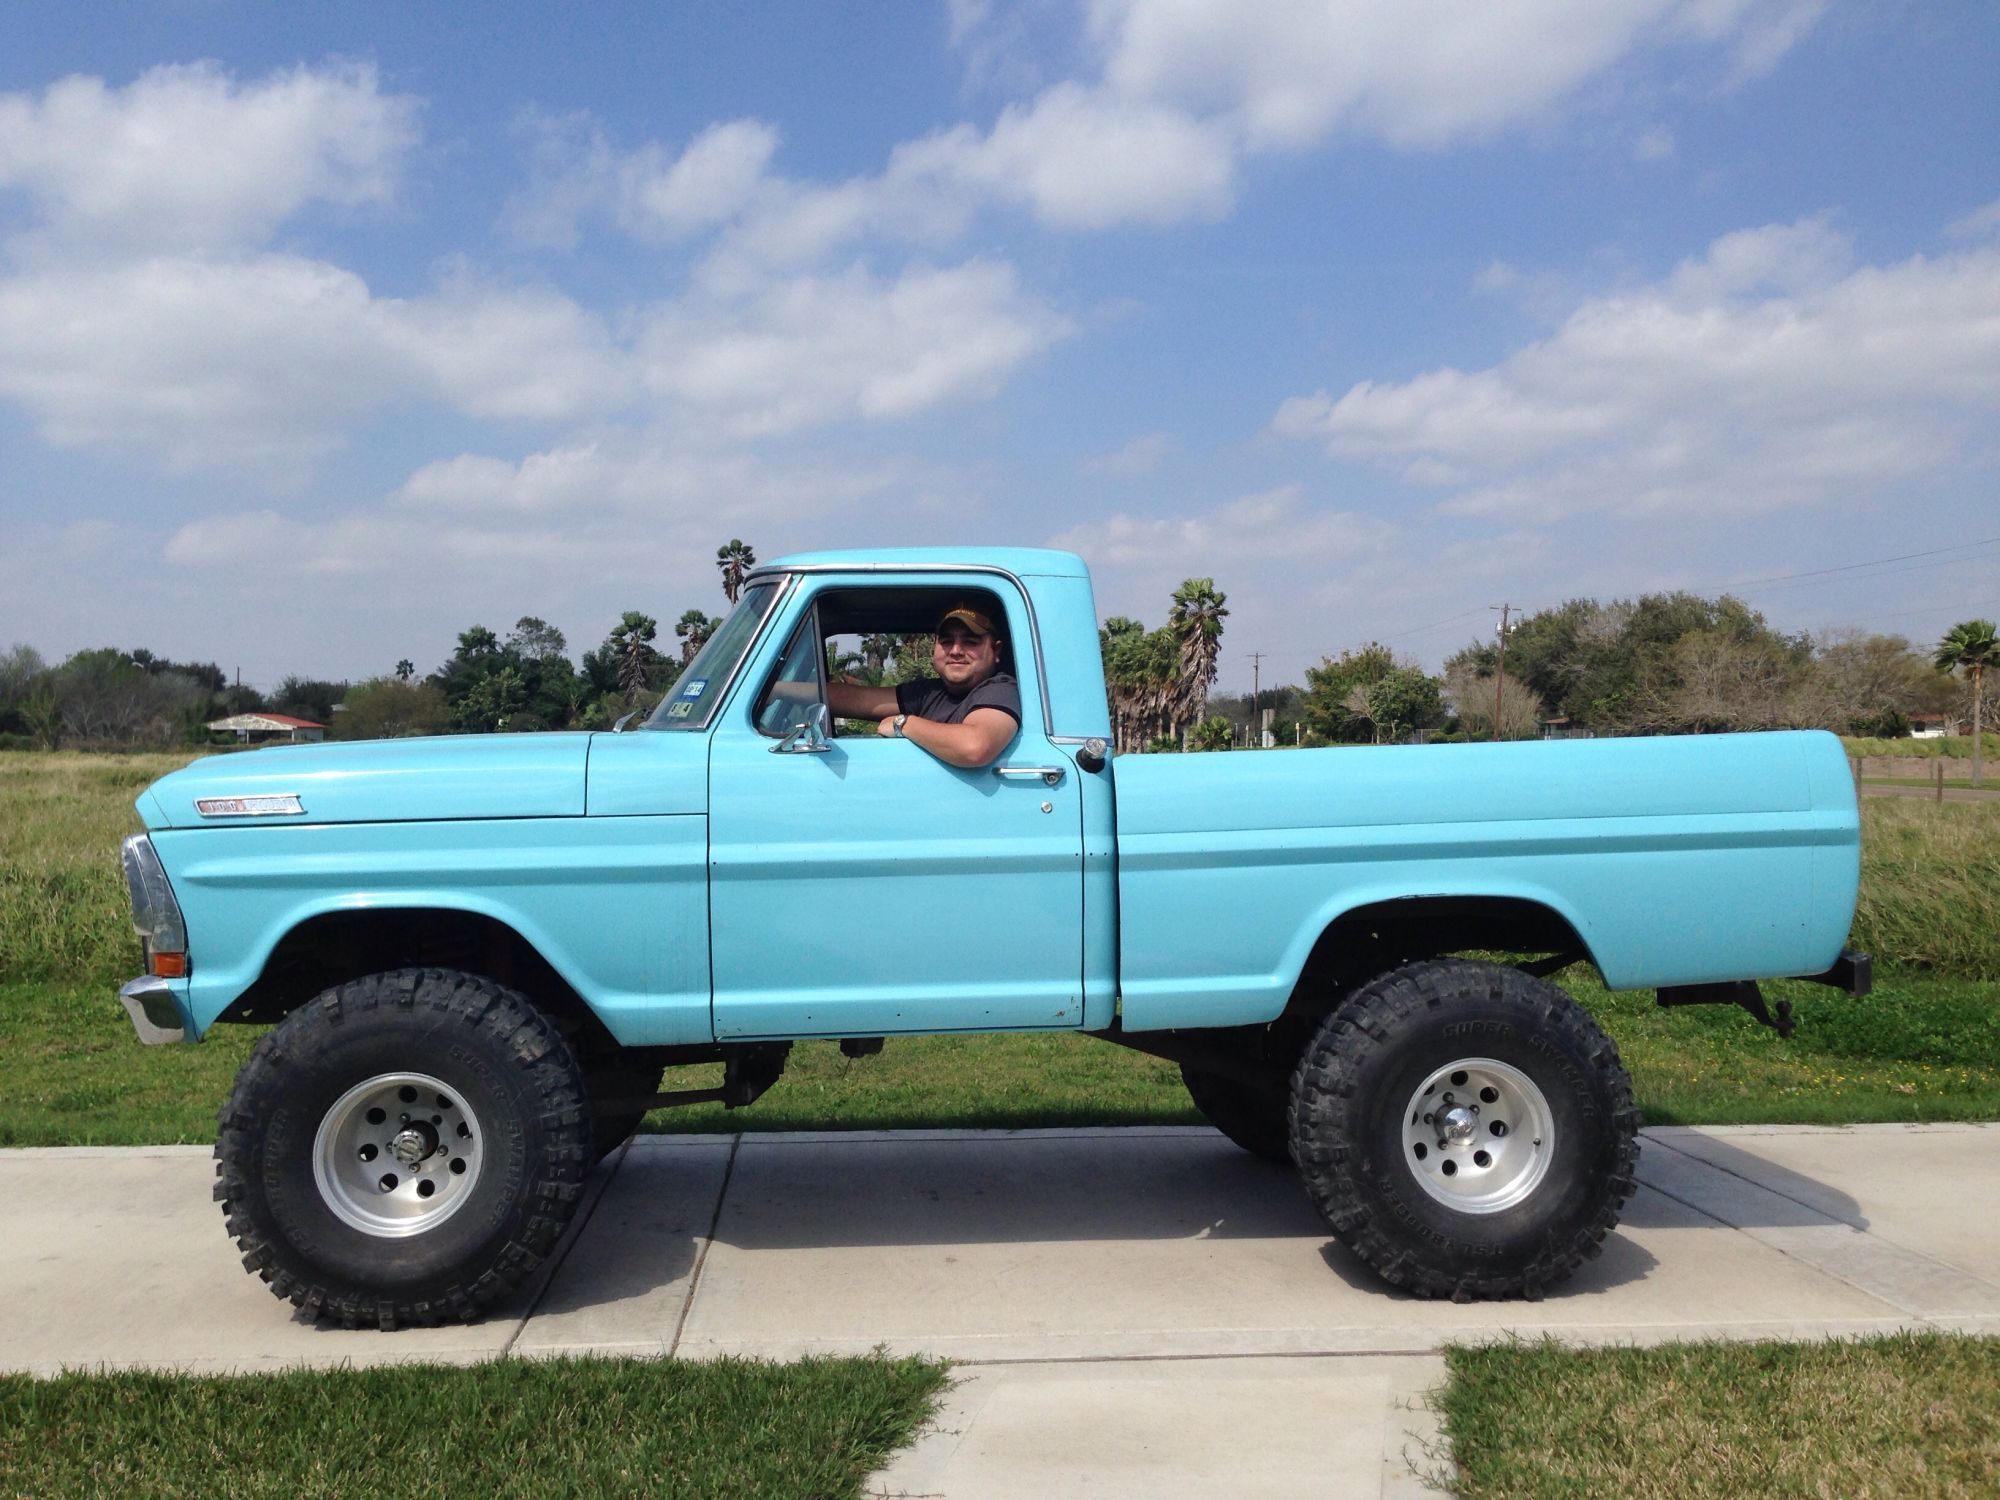 67 72 lifted 4x4 pics page 10 ford truck enthusiasts forums [ 2000 x 1500 Pixel ]